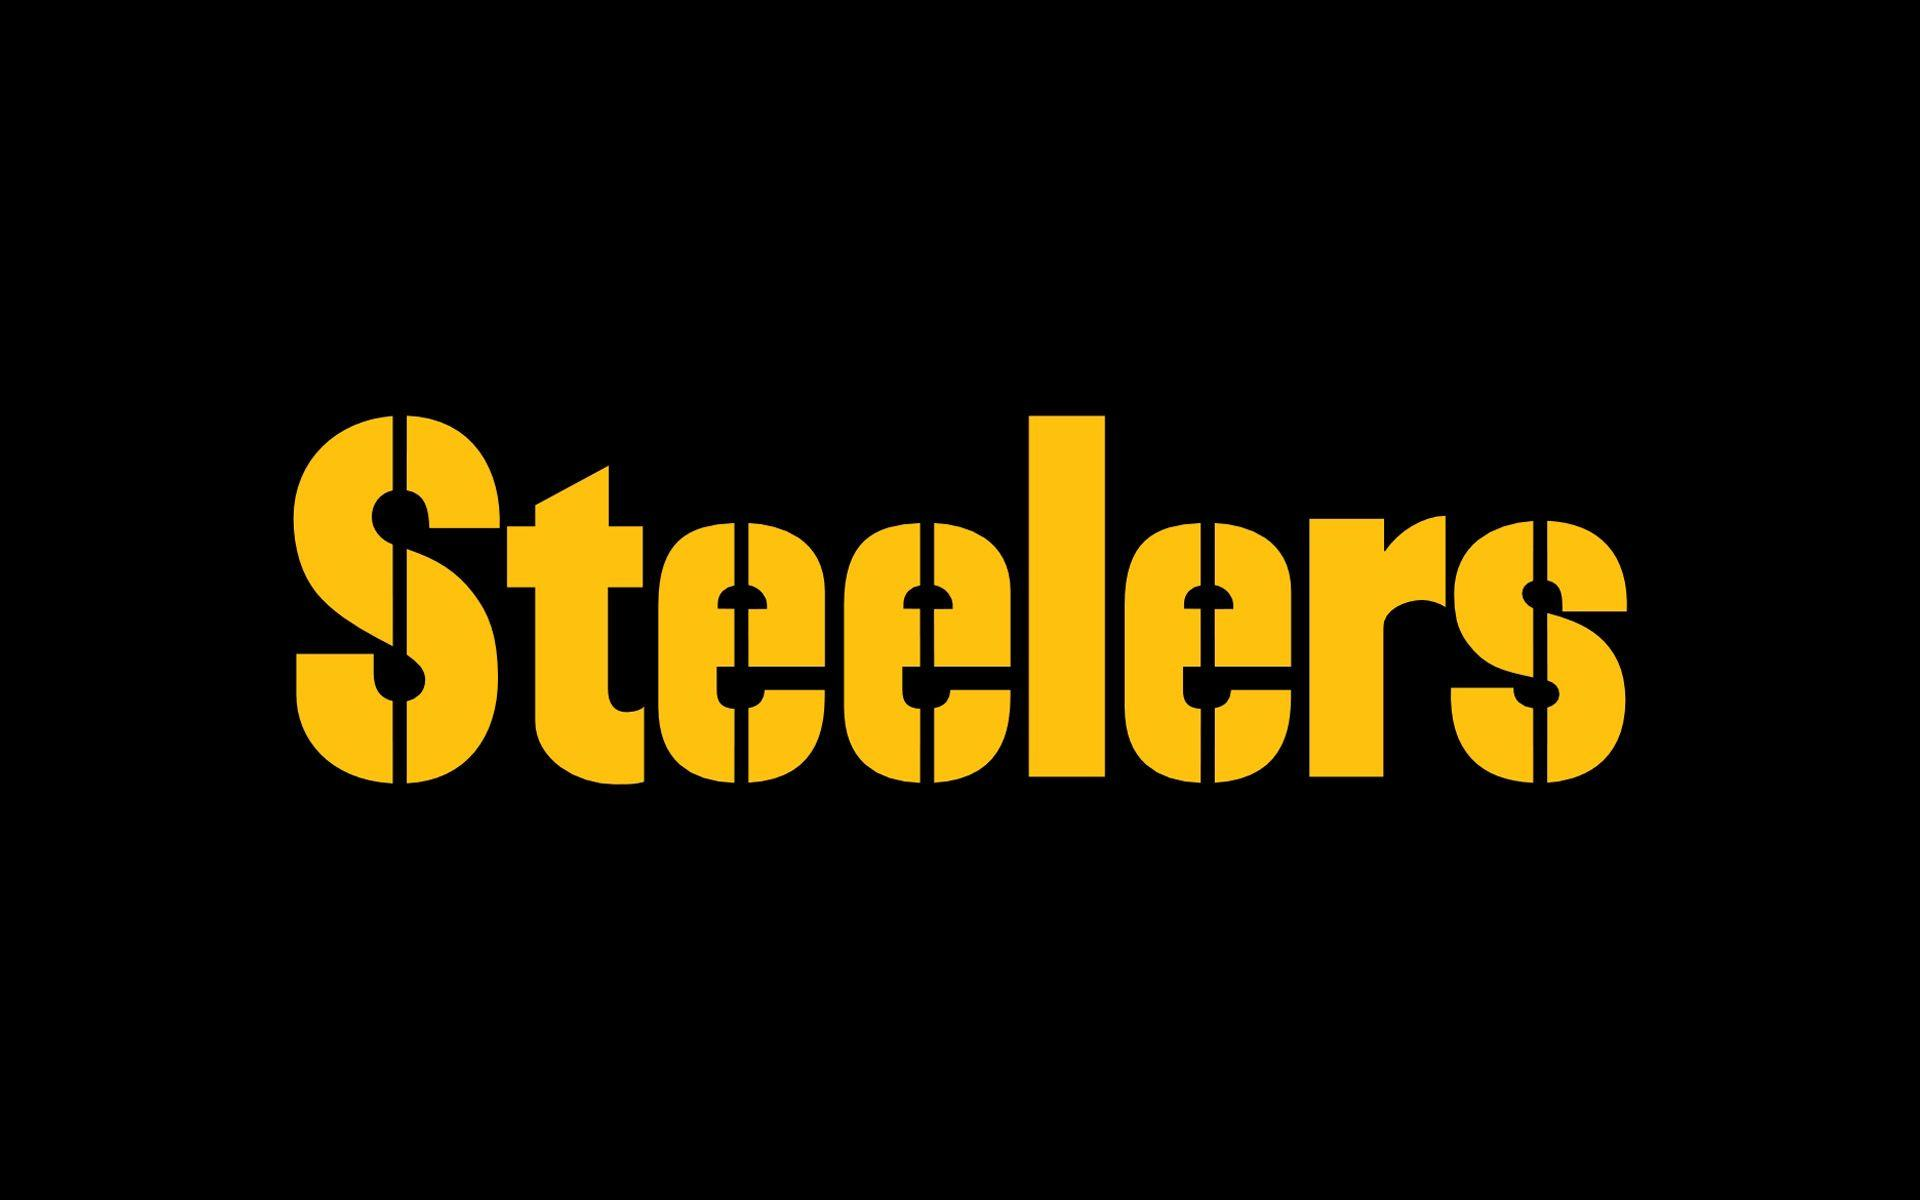 Pittsburgh High Resolution Wallpaper: Steelers Hd Wallpapers